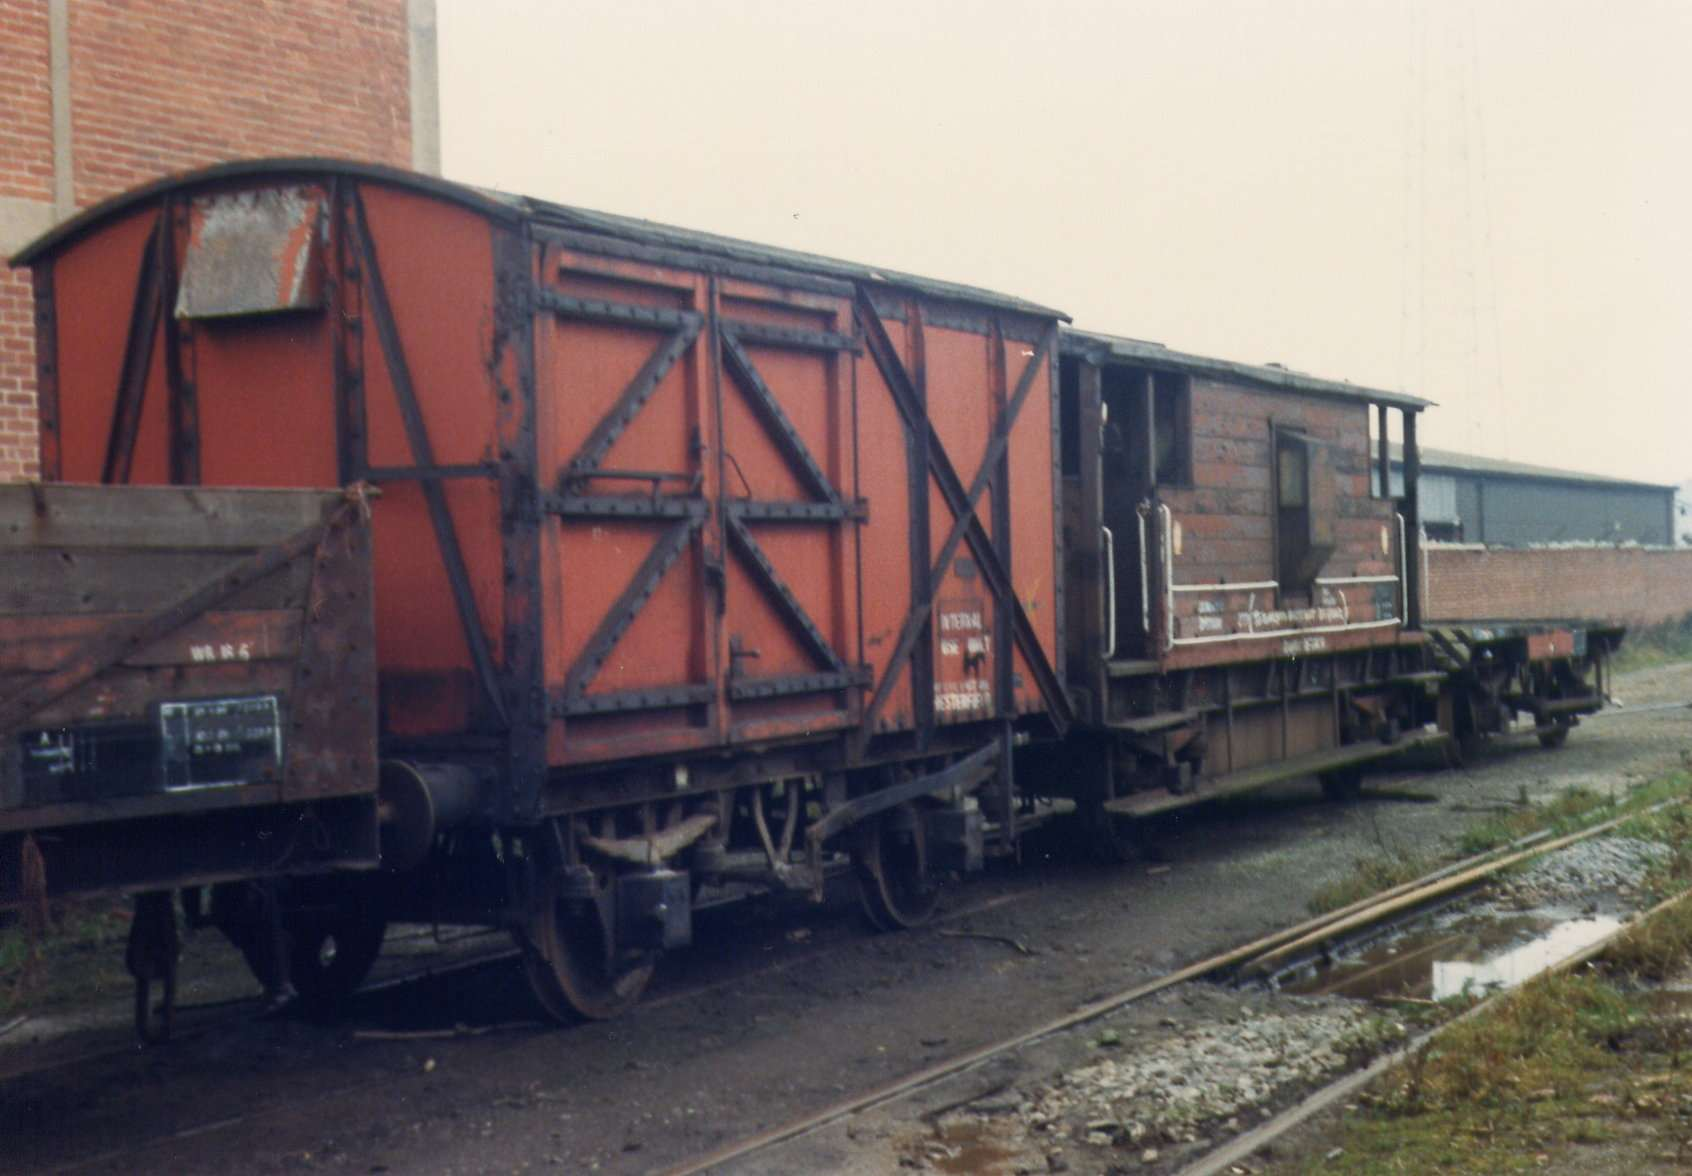 DB778992 at scrapyard awaiting movement to Quainton